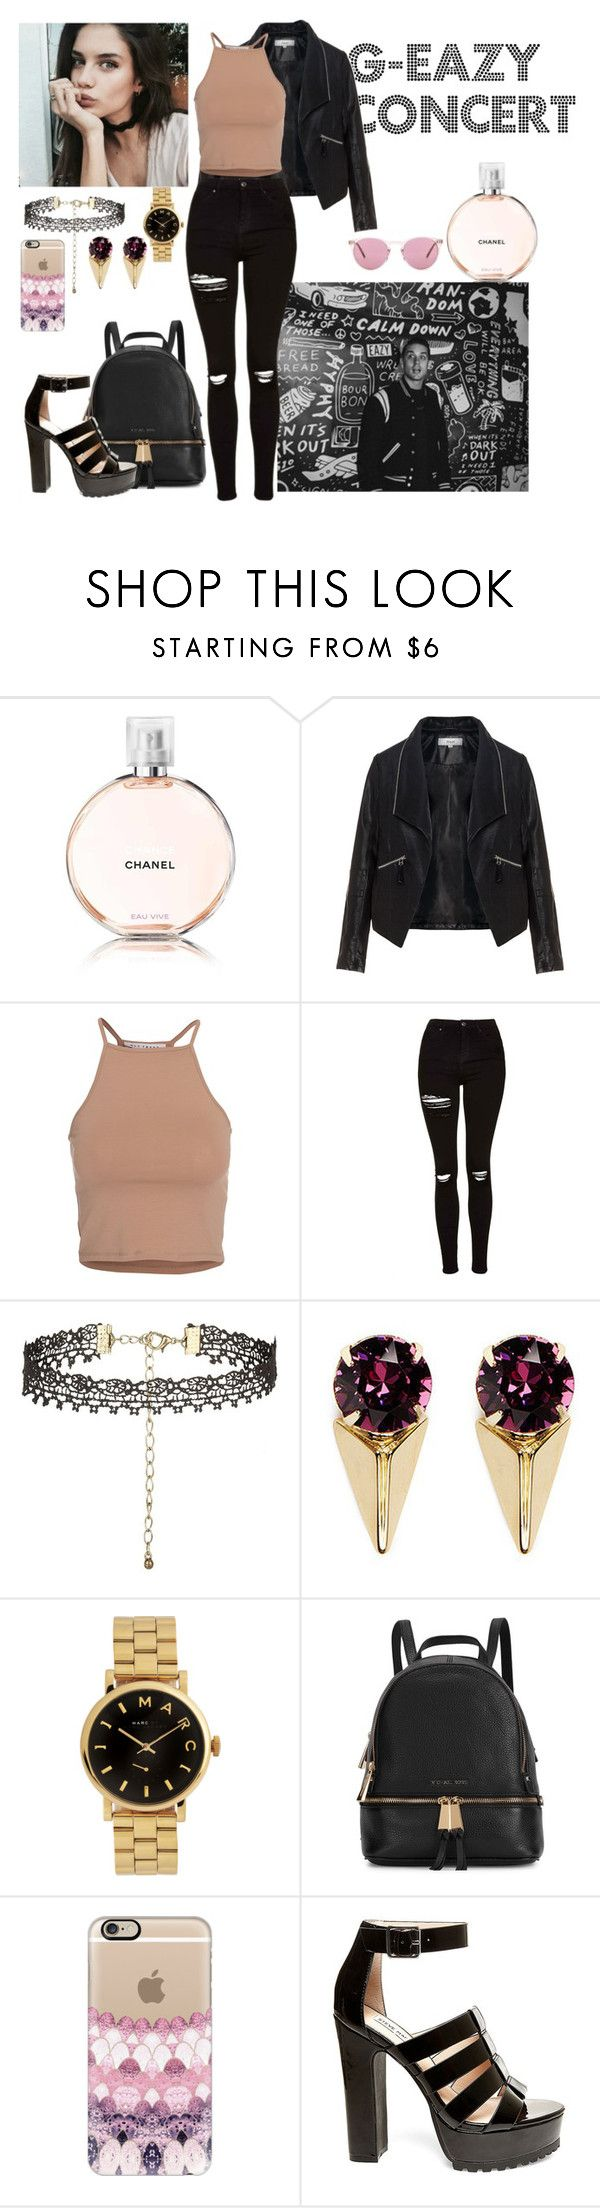 """""""G-eazy concert [LC]"""" by i-m-penguin-purple974 ❤ liked on Polyvore featuring Chanel, Zizzi, NLY Trend, Topshop, Joomi Lim, Marc by Marc Jacobs, Michael Kors, Casetify, Steve Madden and Oliver Peoples"""